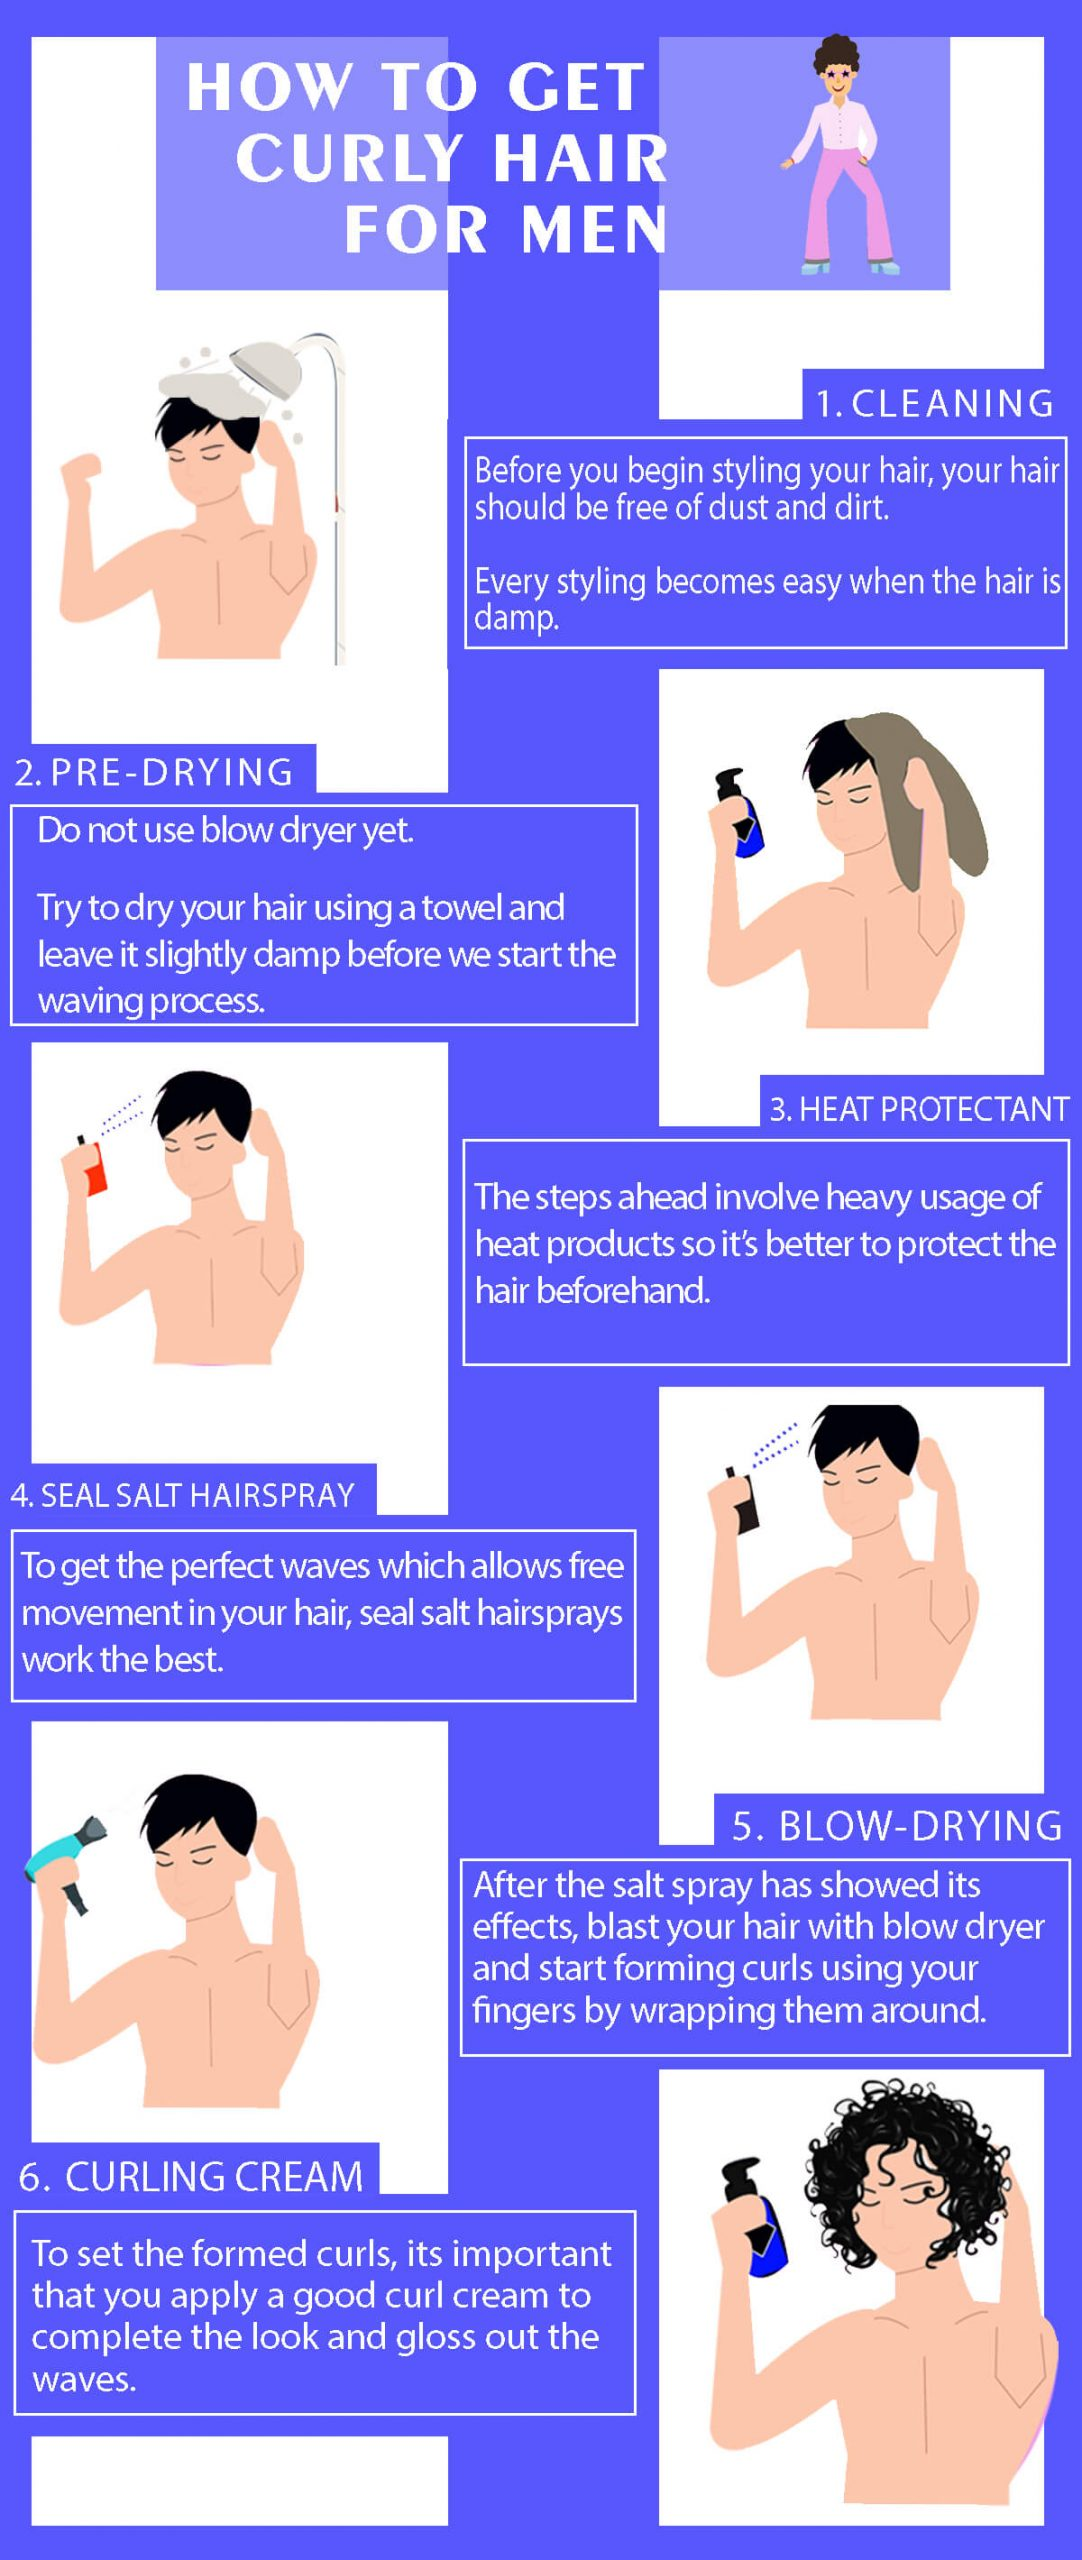 How to get curly hair for men – Step by Step Process